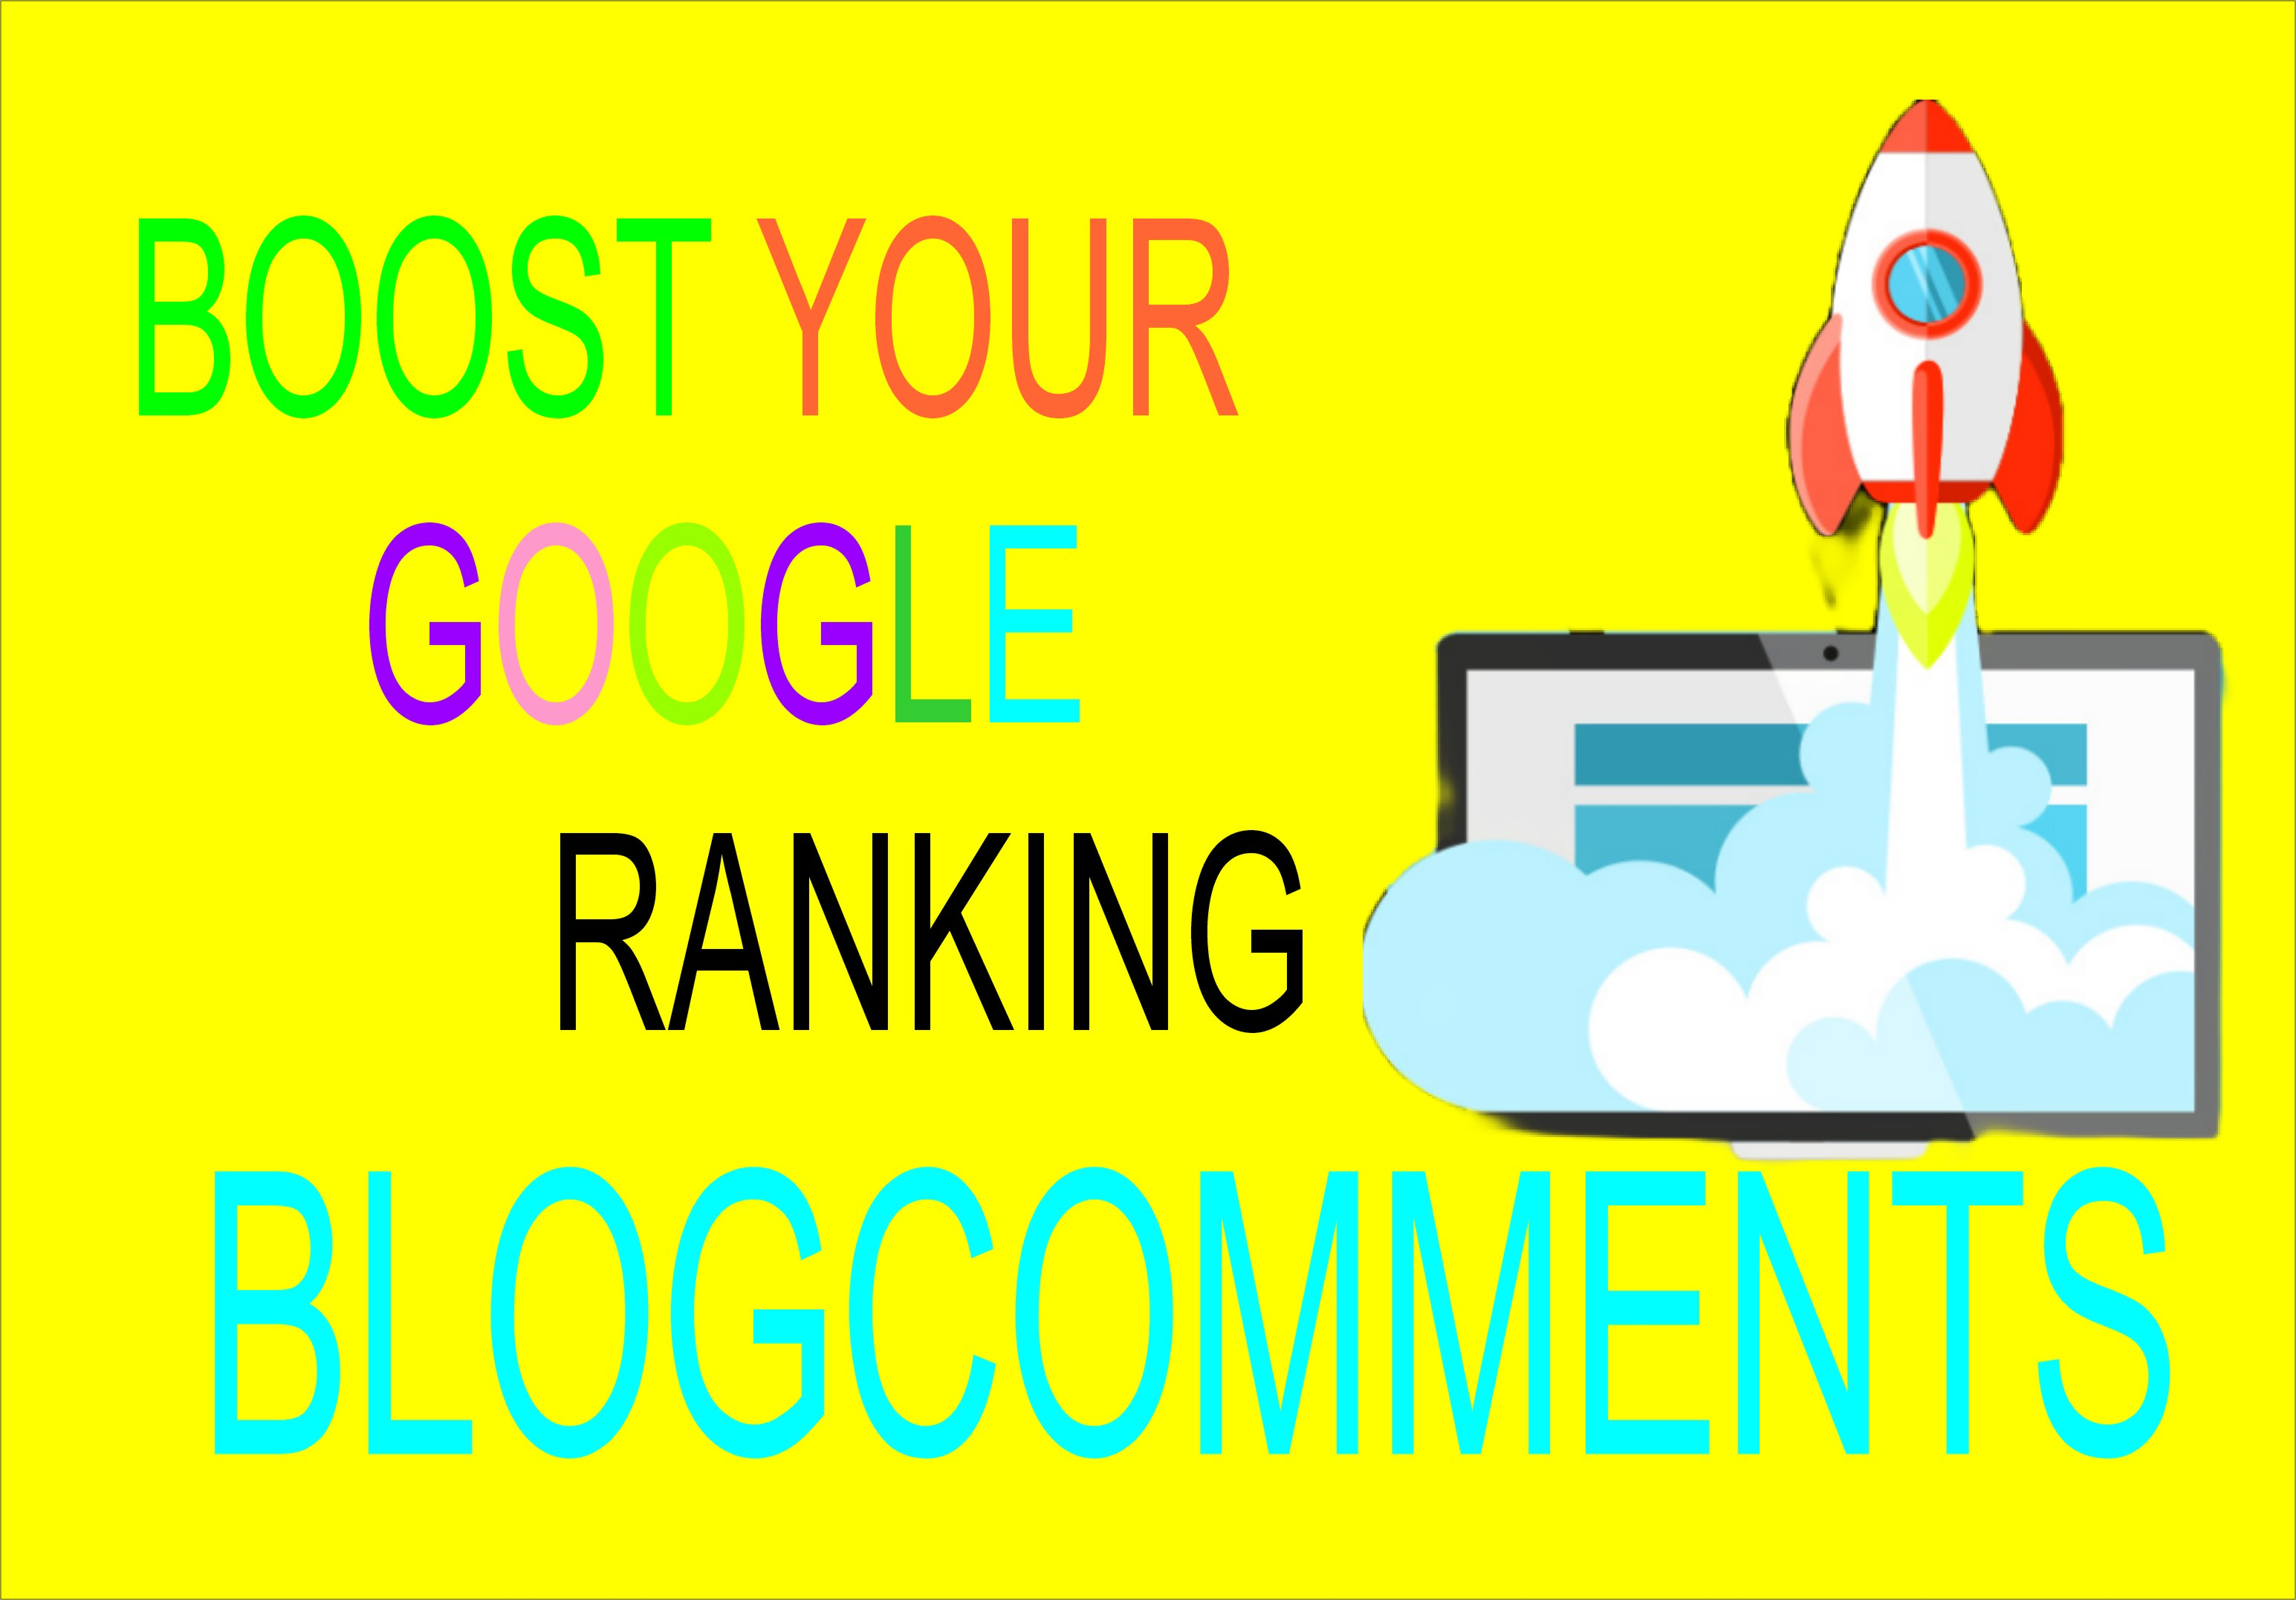 I Will Do 100 high Quality Dofollow Blogcomment Backlinks